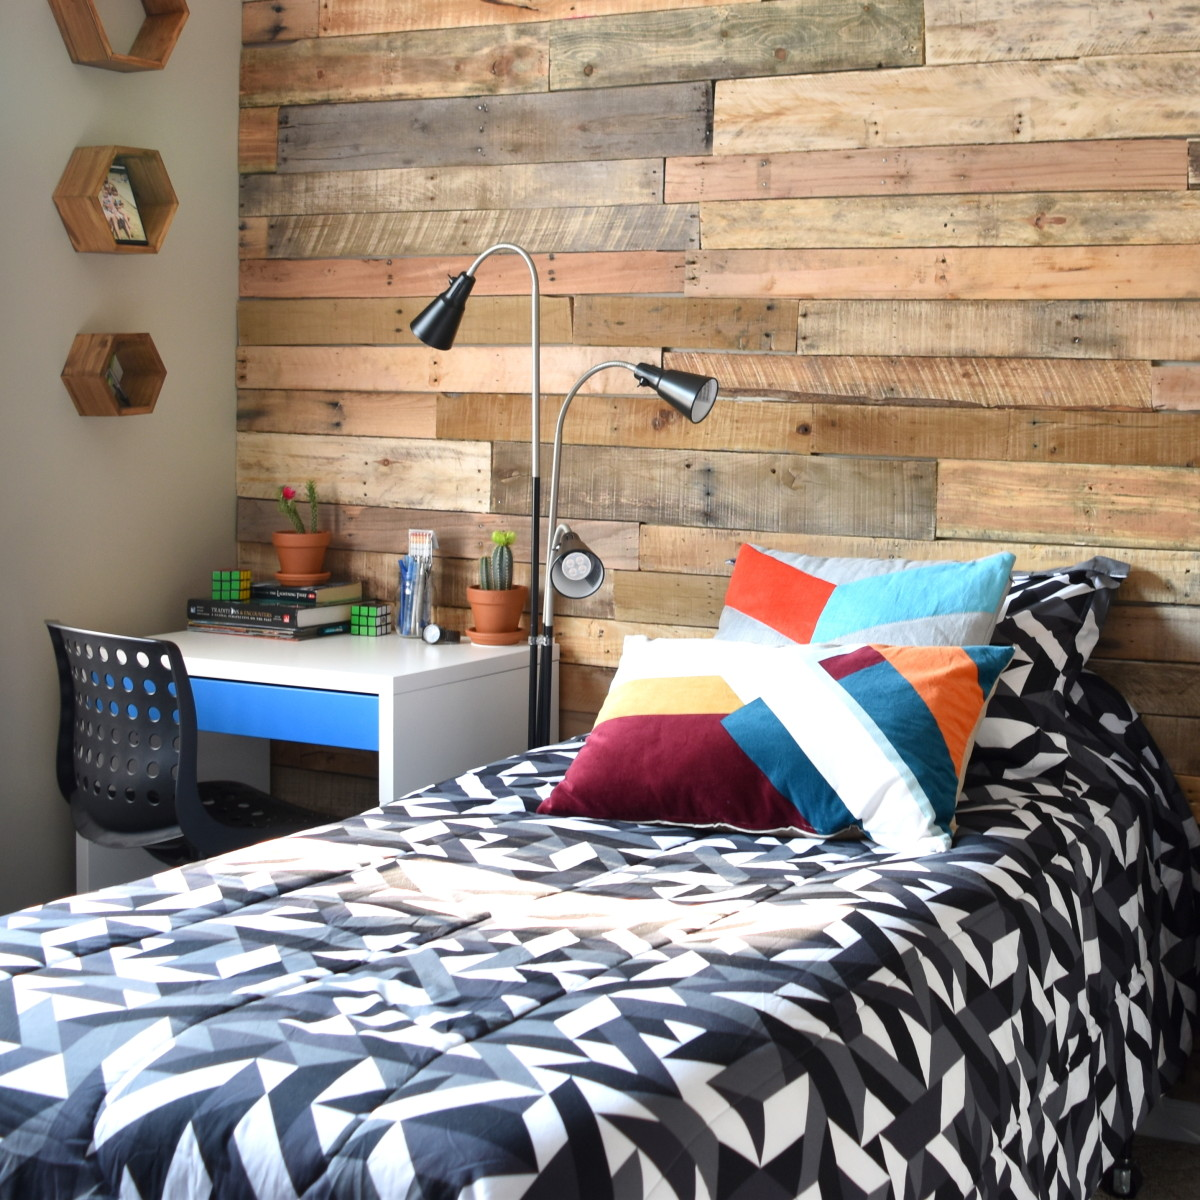 Modern Rustic Teen Room Diy Pallet Wall Tutorial